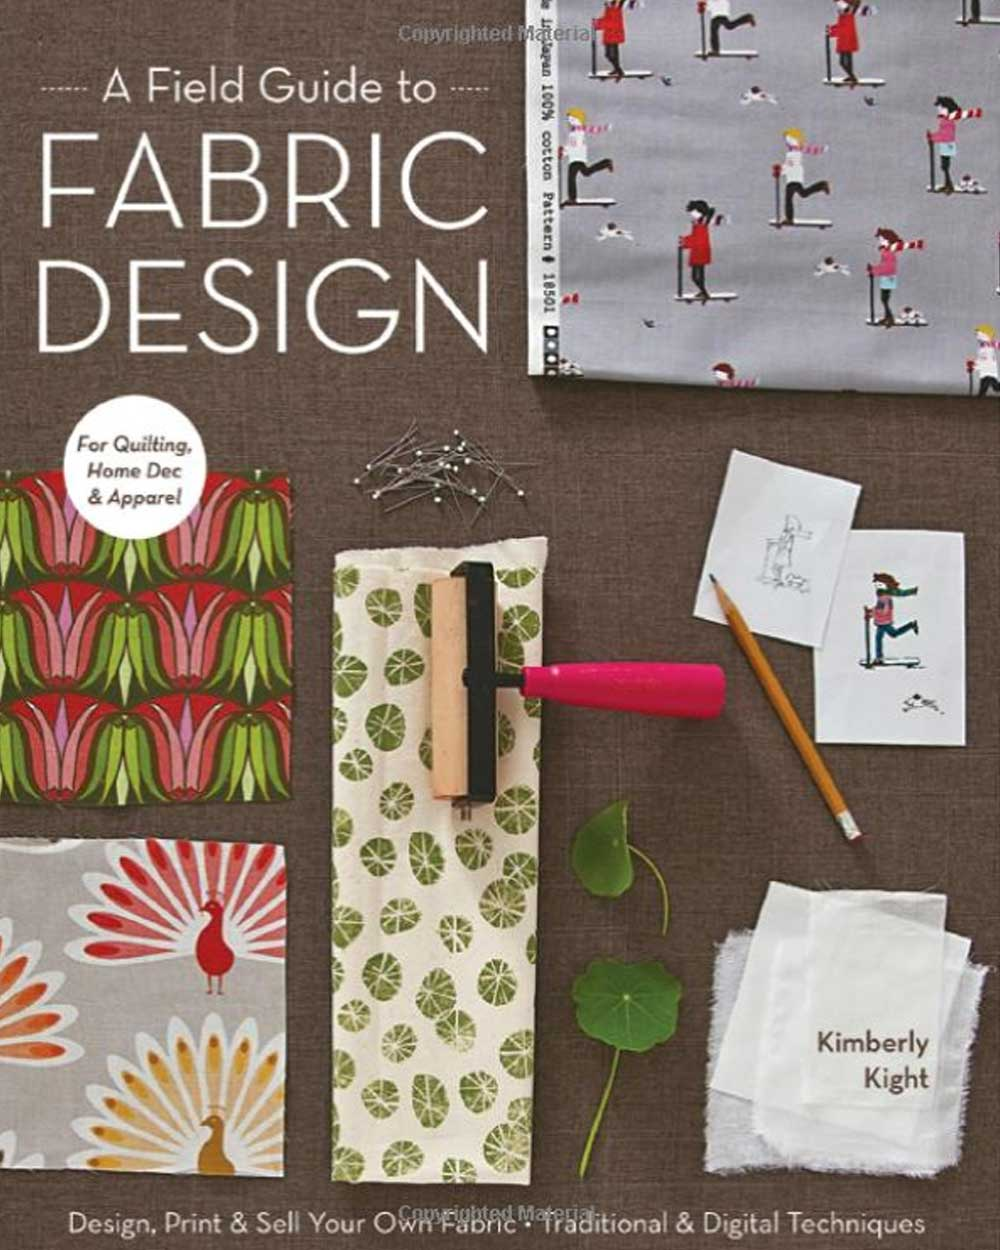 If you have ever dreamed of showing your designs on fabric, this guide will show you how.